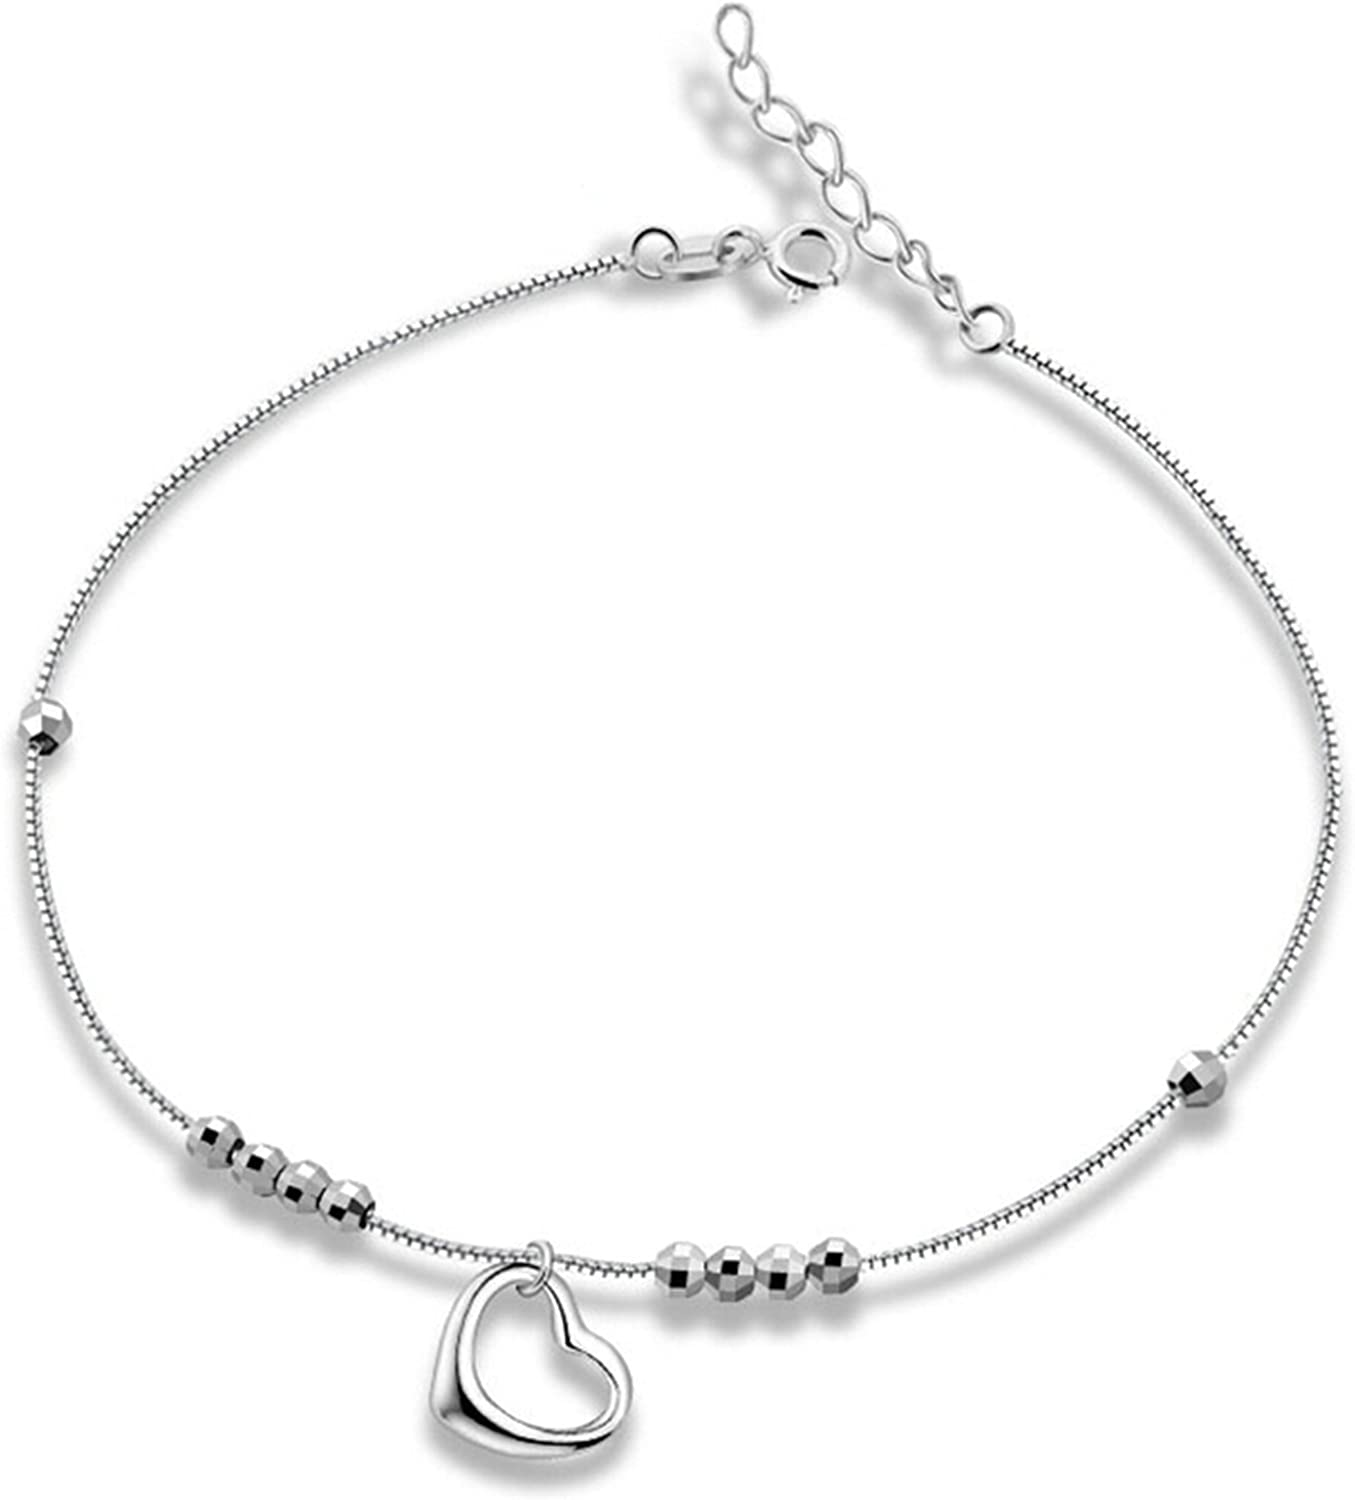 Adisaer Silver Ankle Bracelet for Womens Heart Pendant Beads Chain Anklet Beach Foot Jewelry for Girls